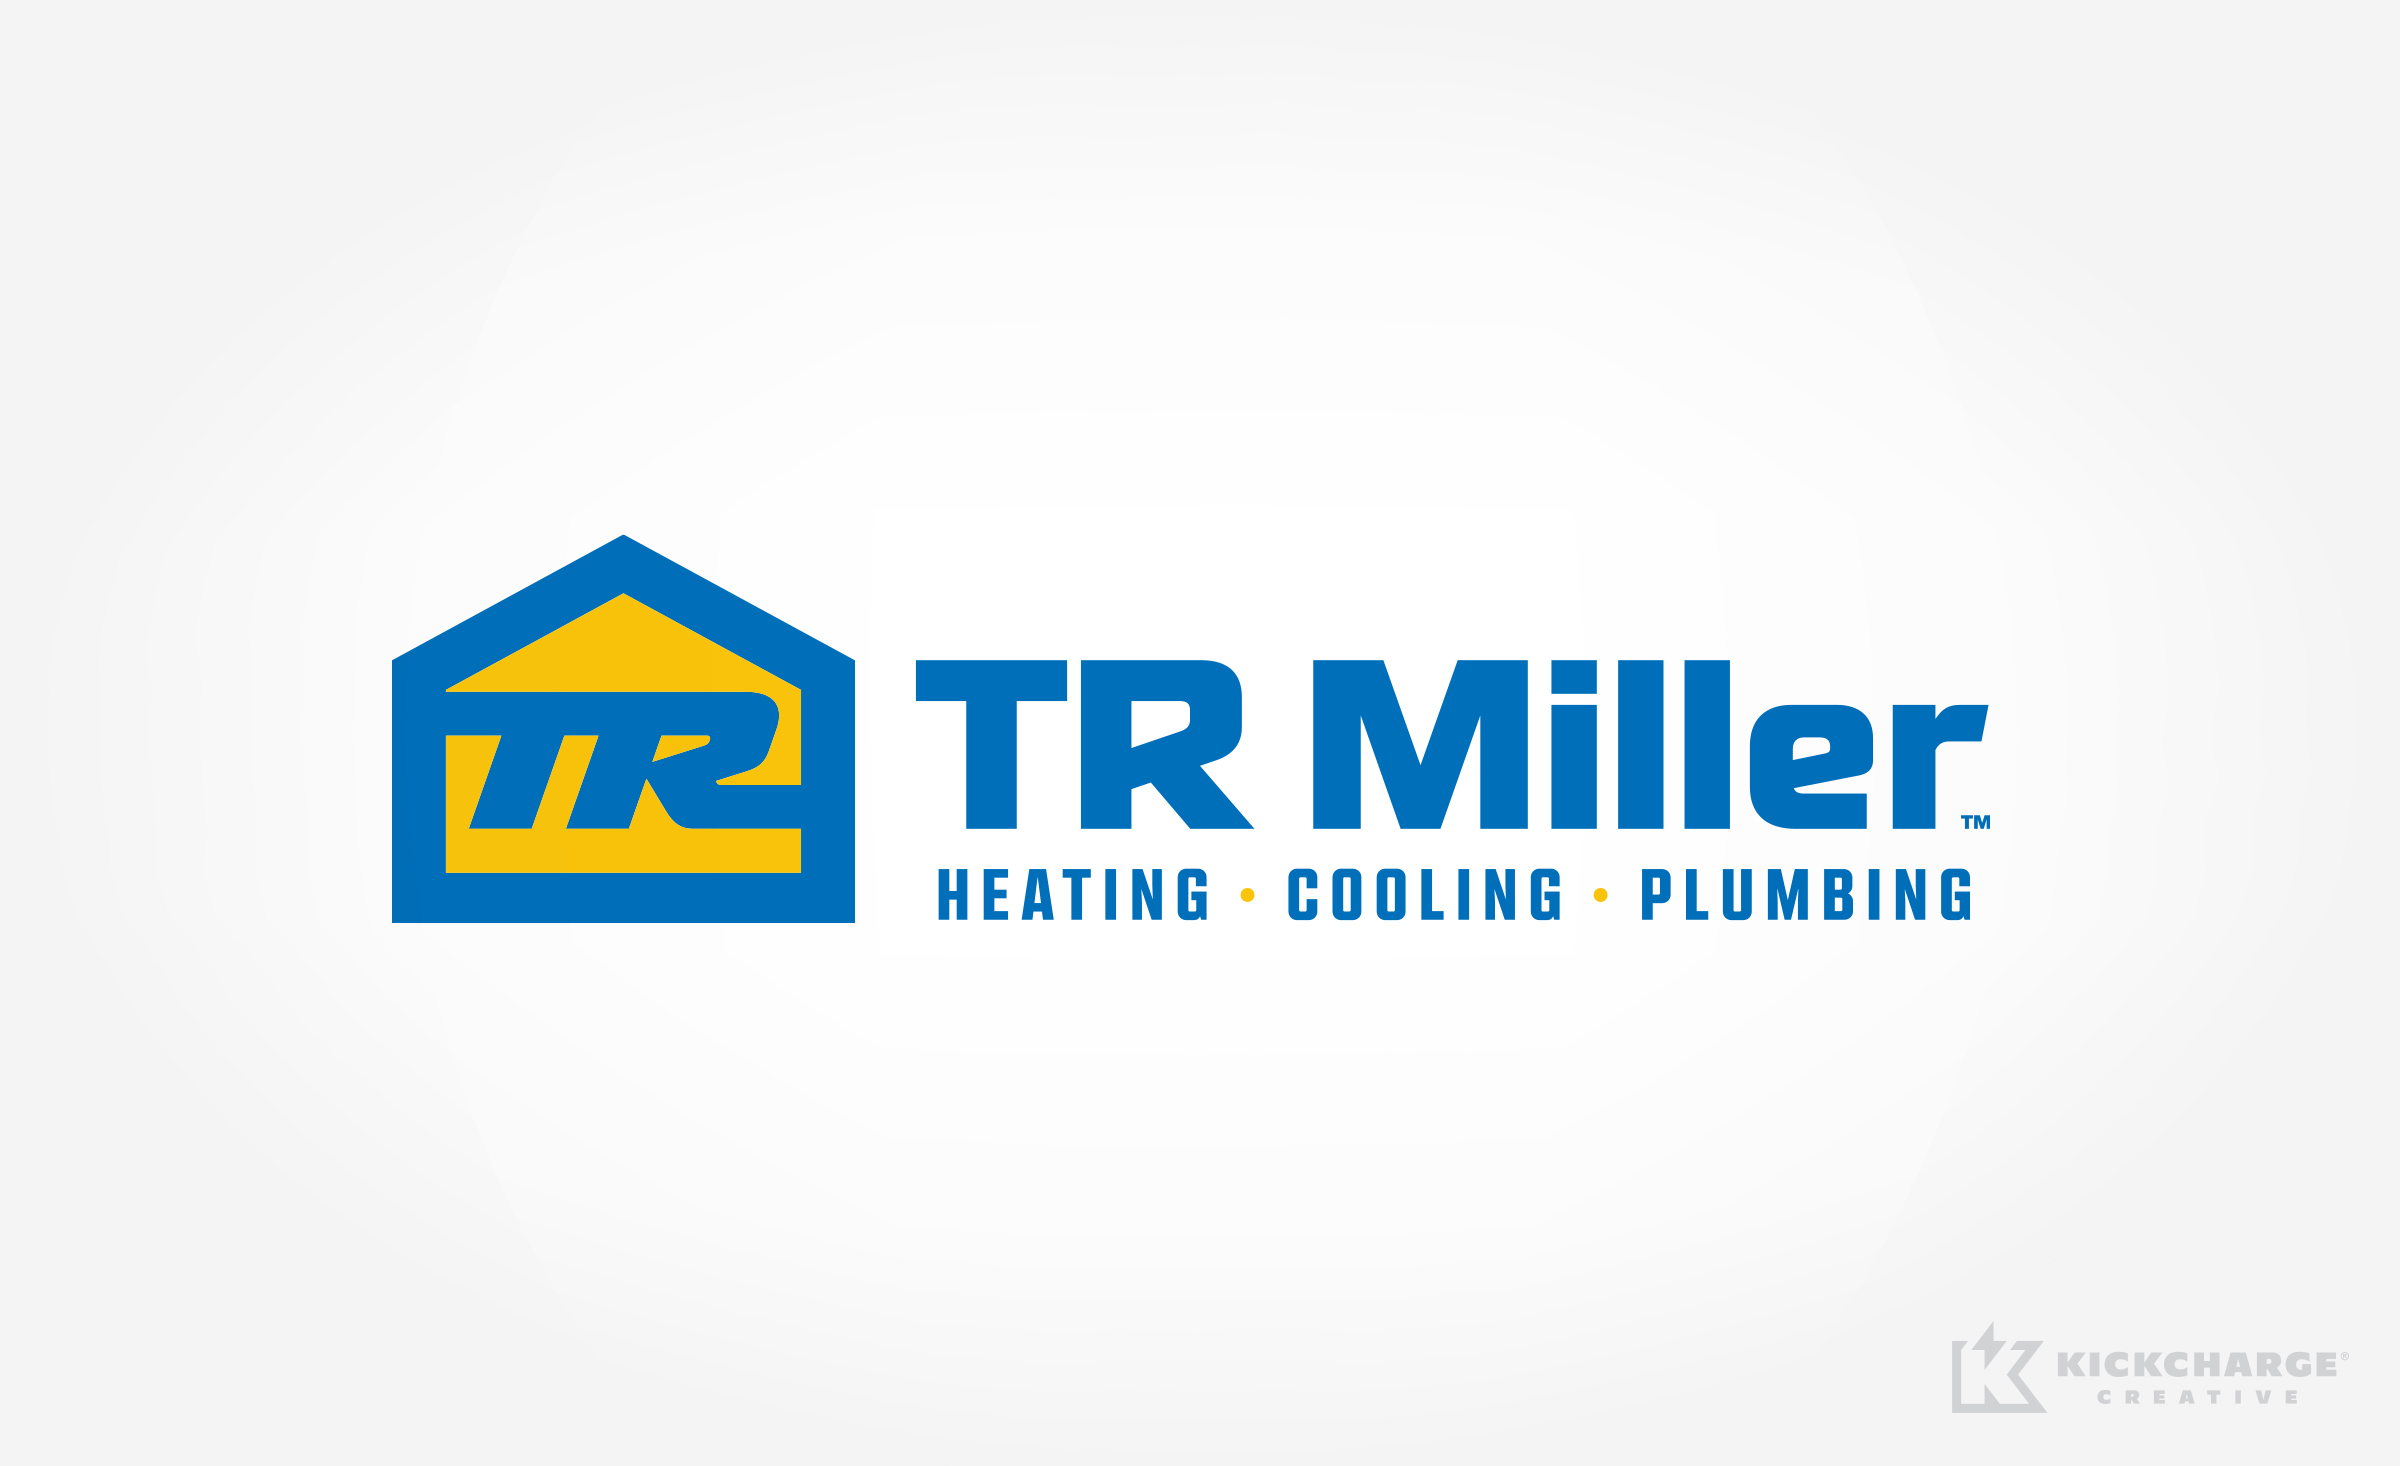 hvac and plumbing logo for TR Miller